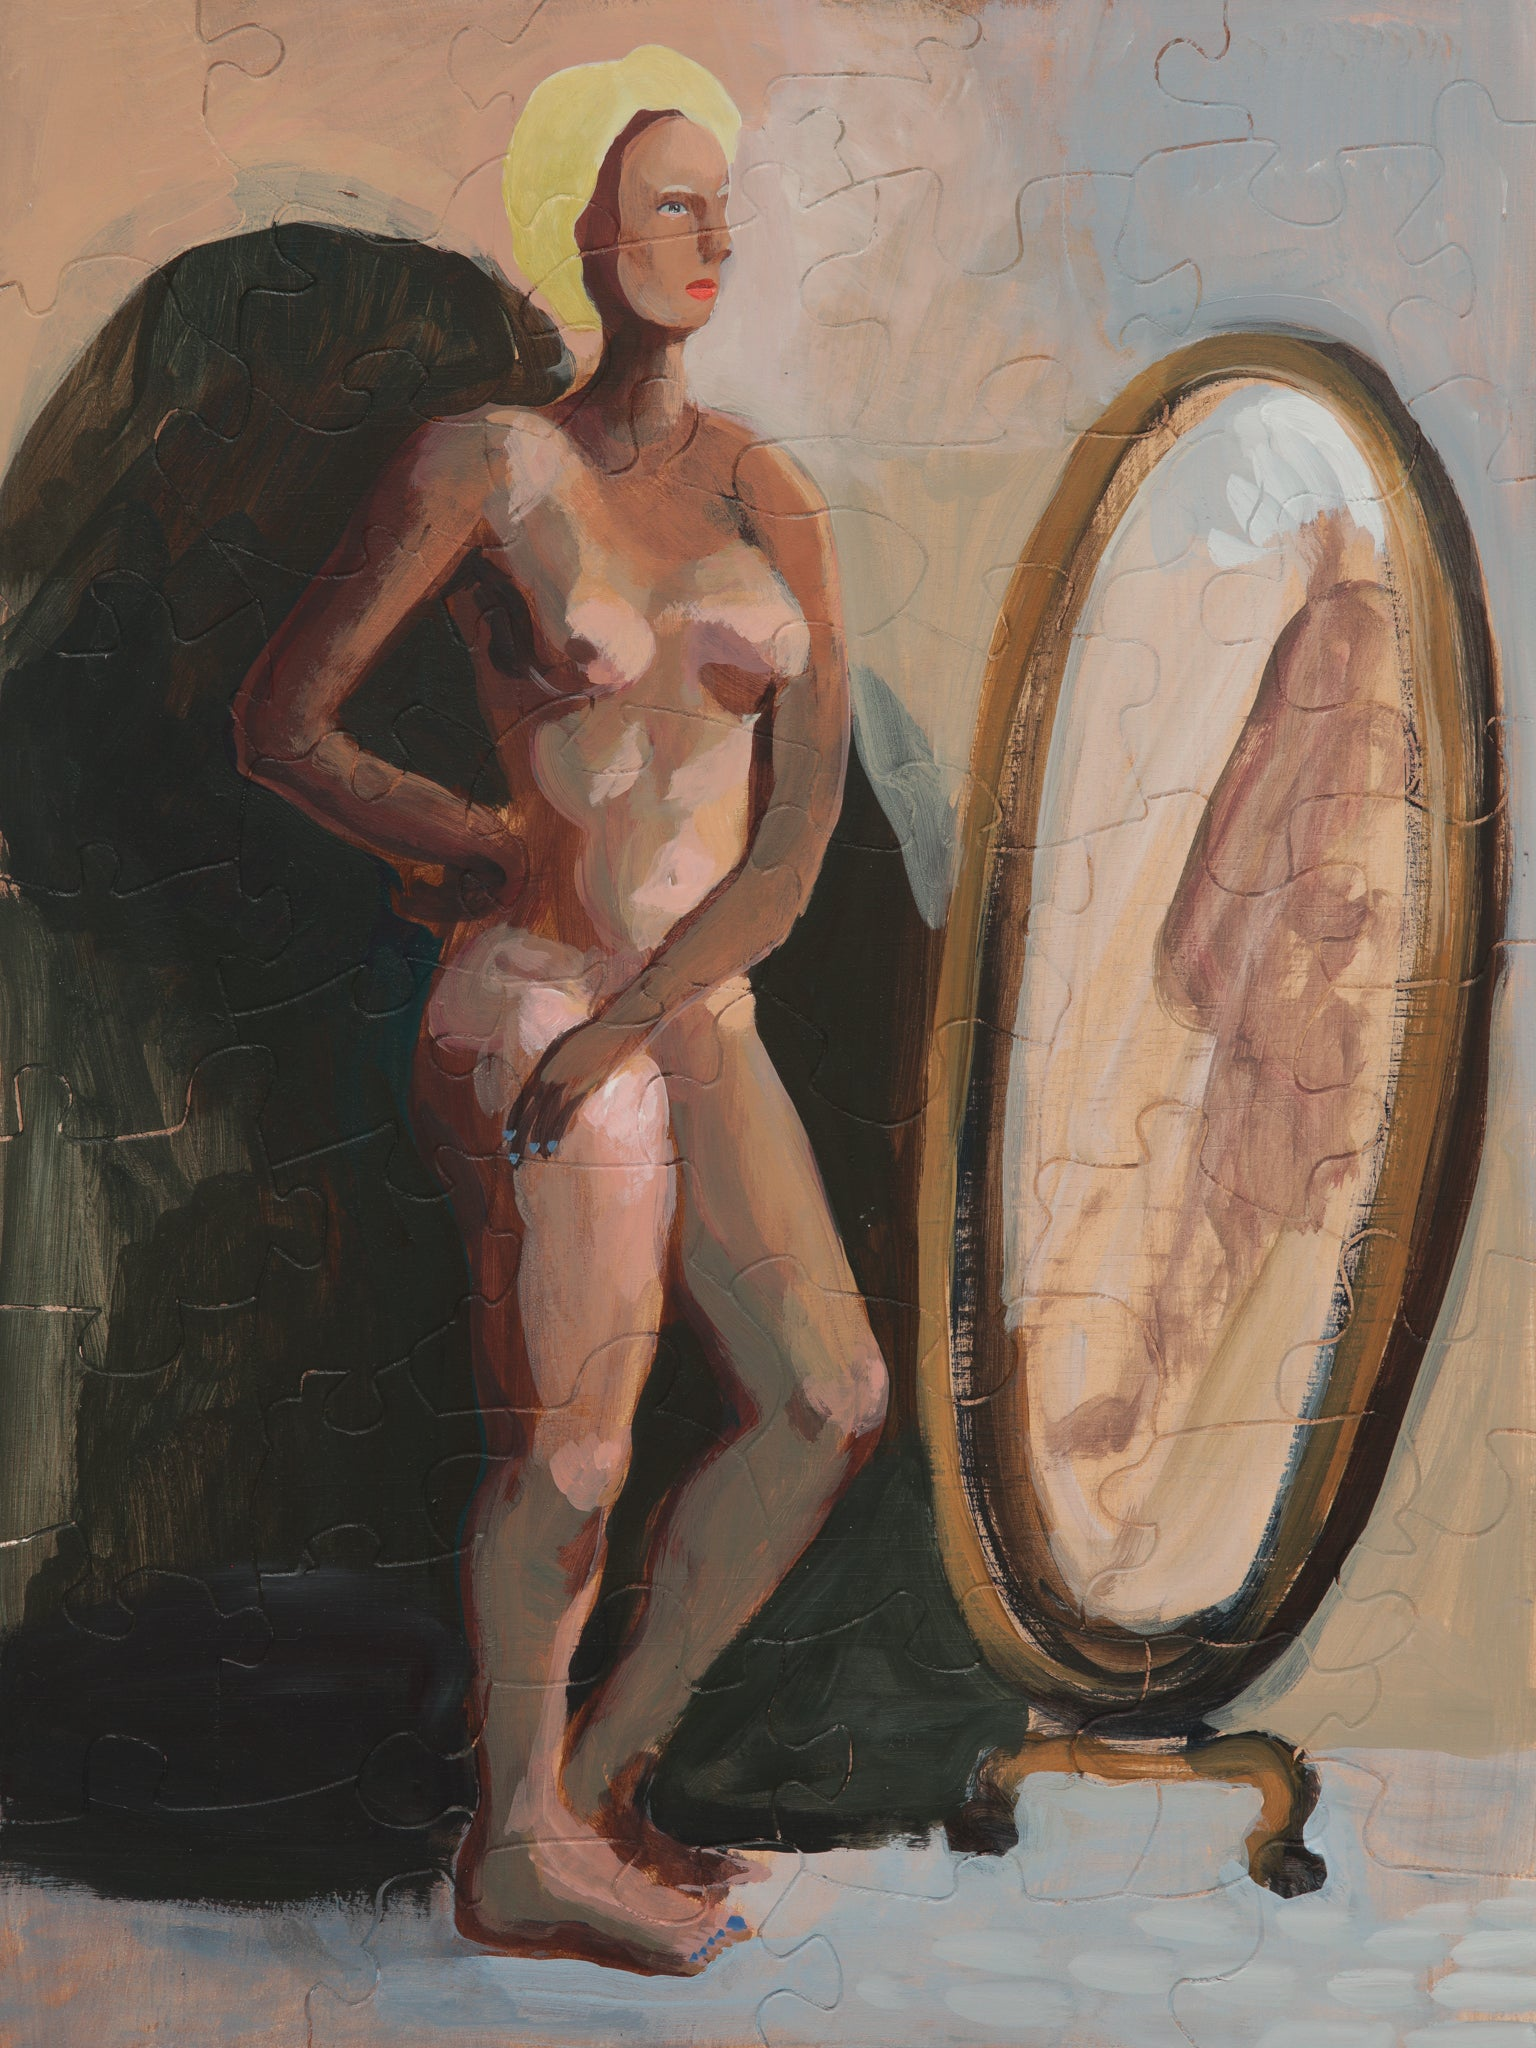 PUZZLE 256 - WOMAN EXAMINING HER REFLECTION